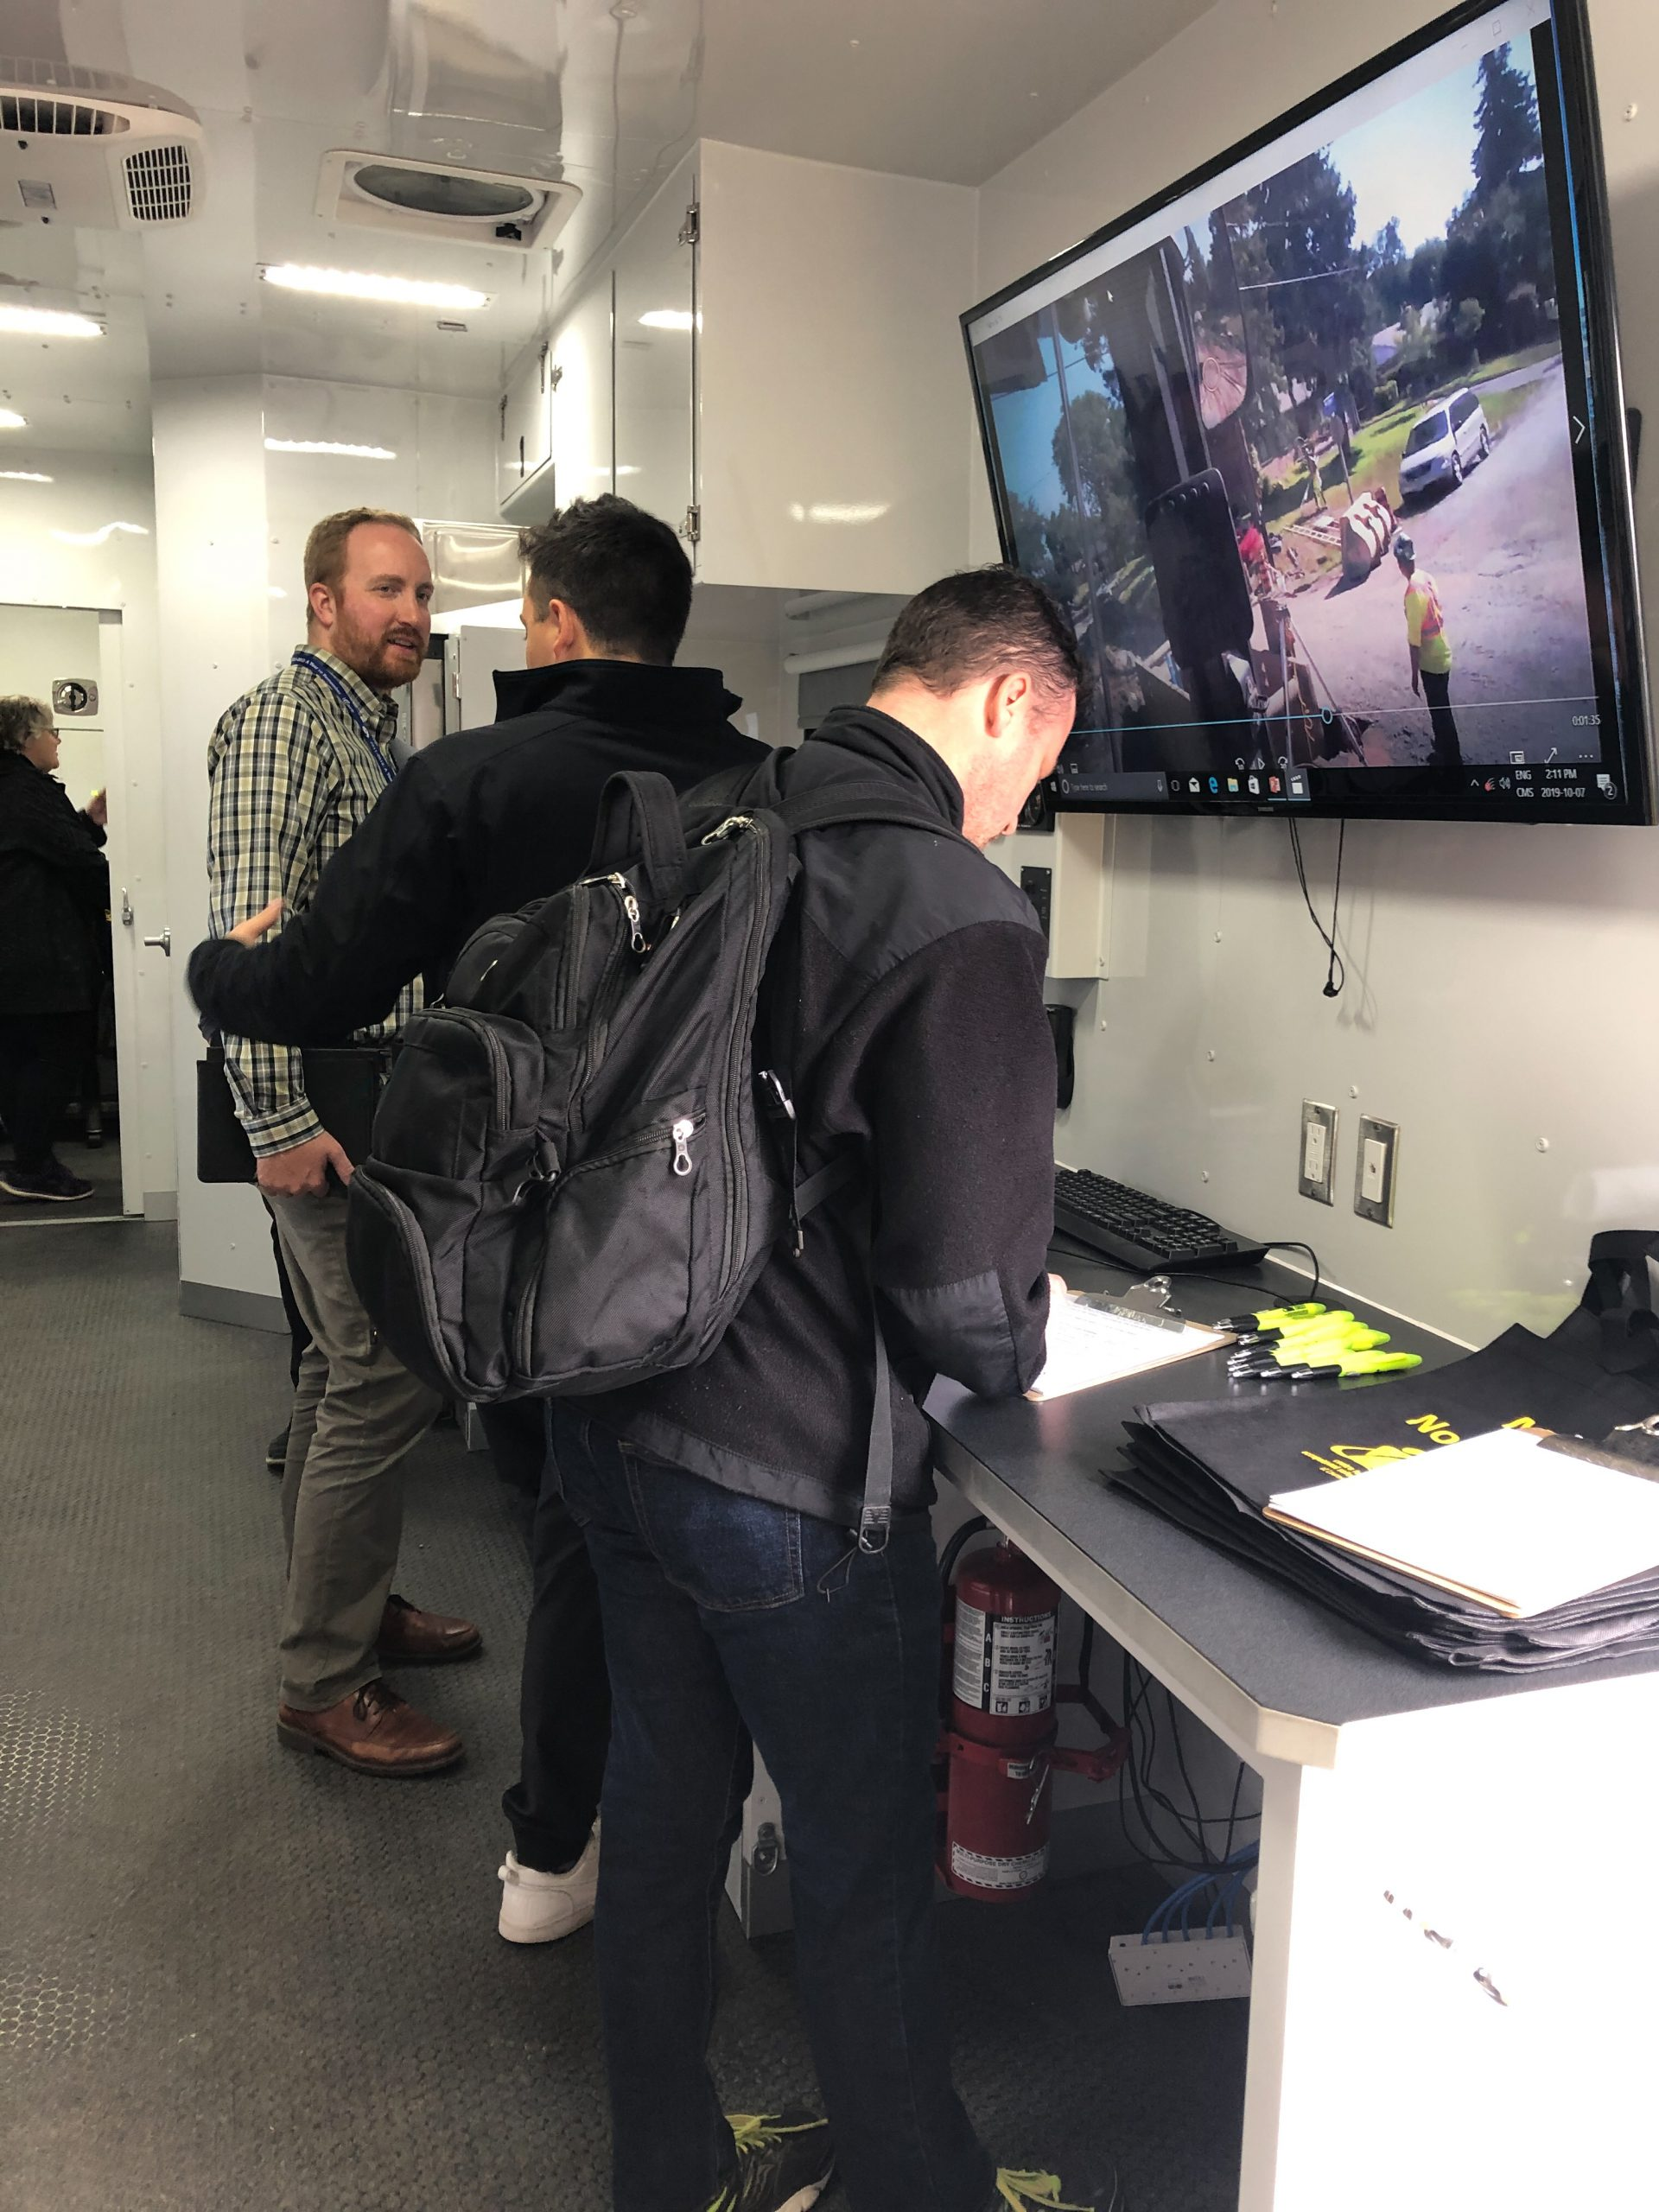 Visitors exploring the inside of the CROSH mobile research lab while a video plays on a monitor